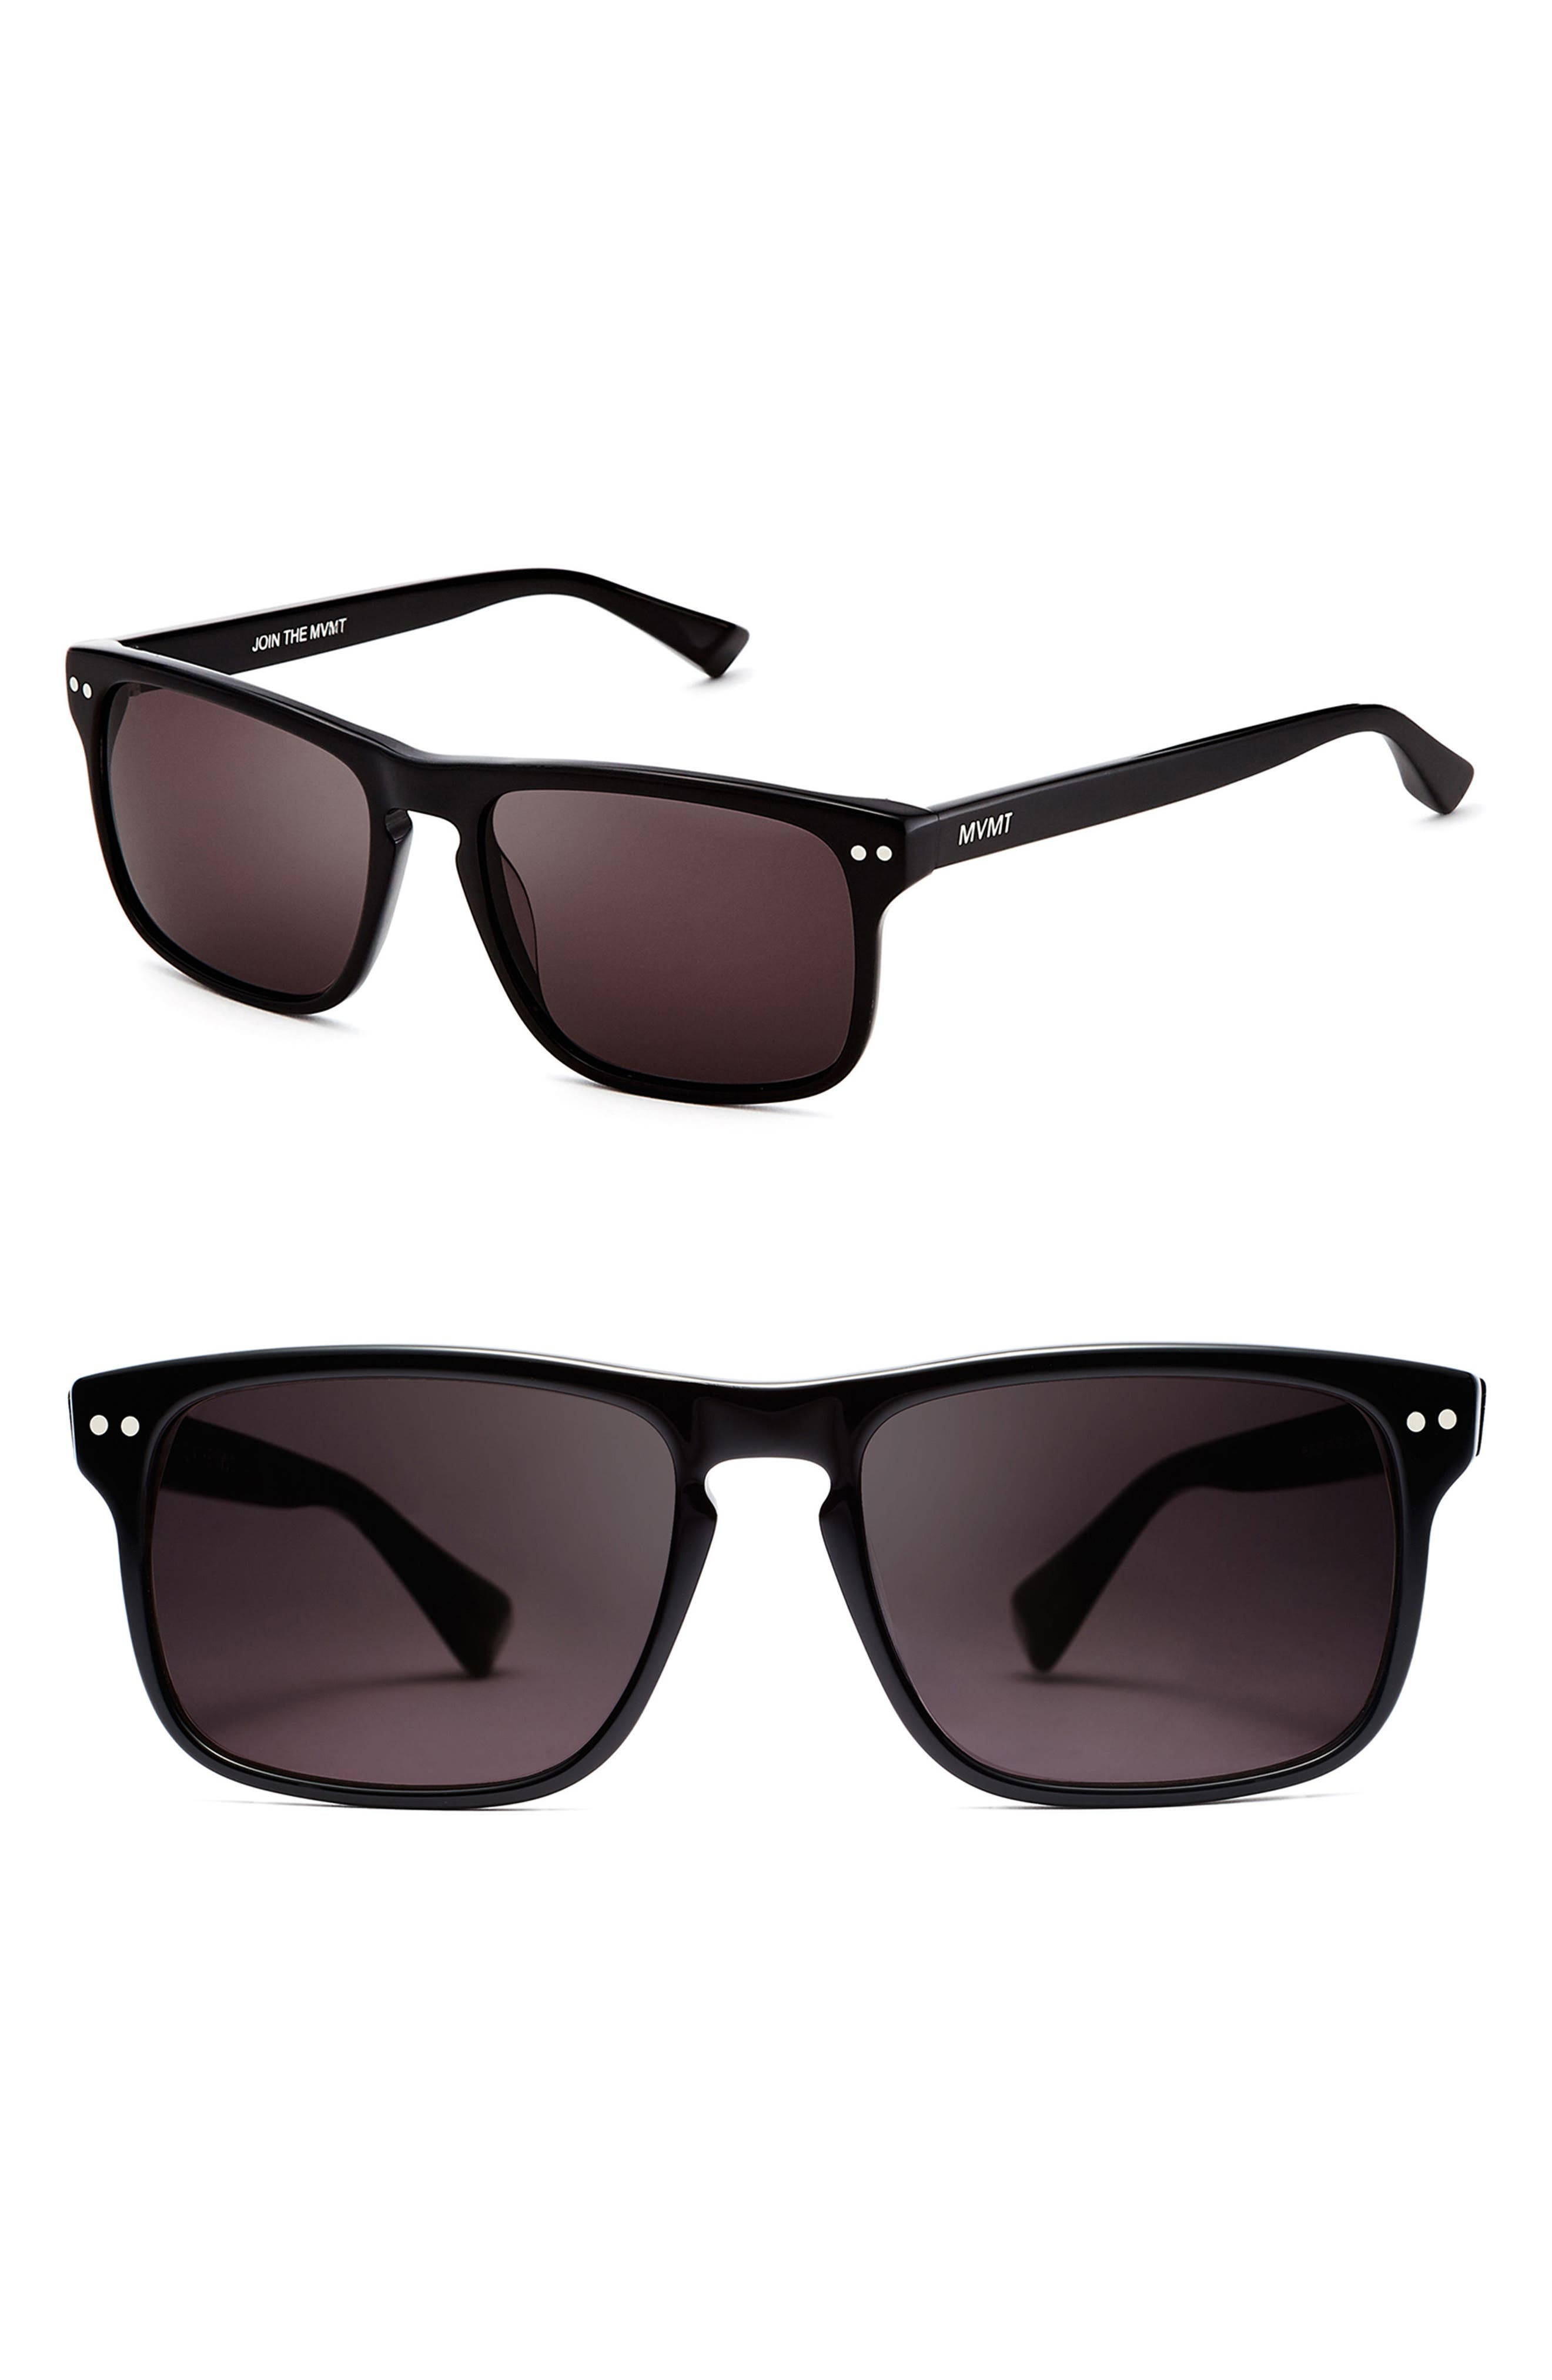 Reveler 57mm Polarized Sunglasses,                             Main thumbnail 1, color,                             BLACK